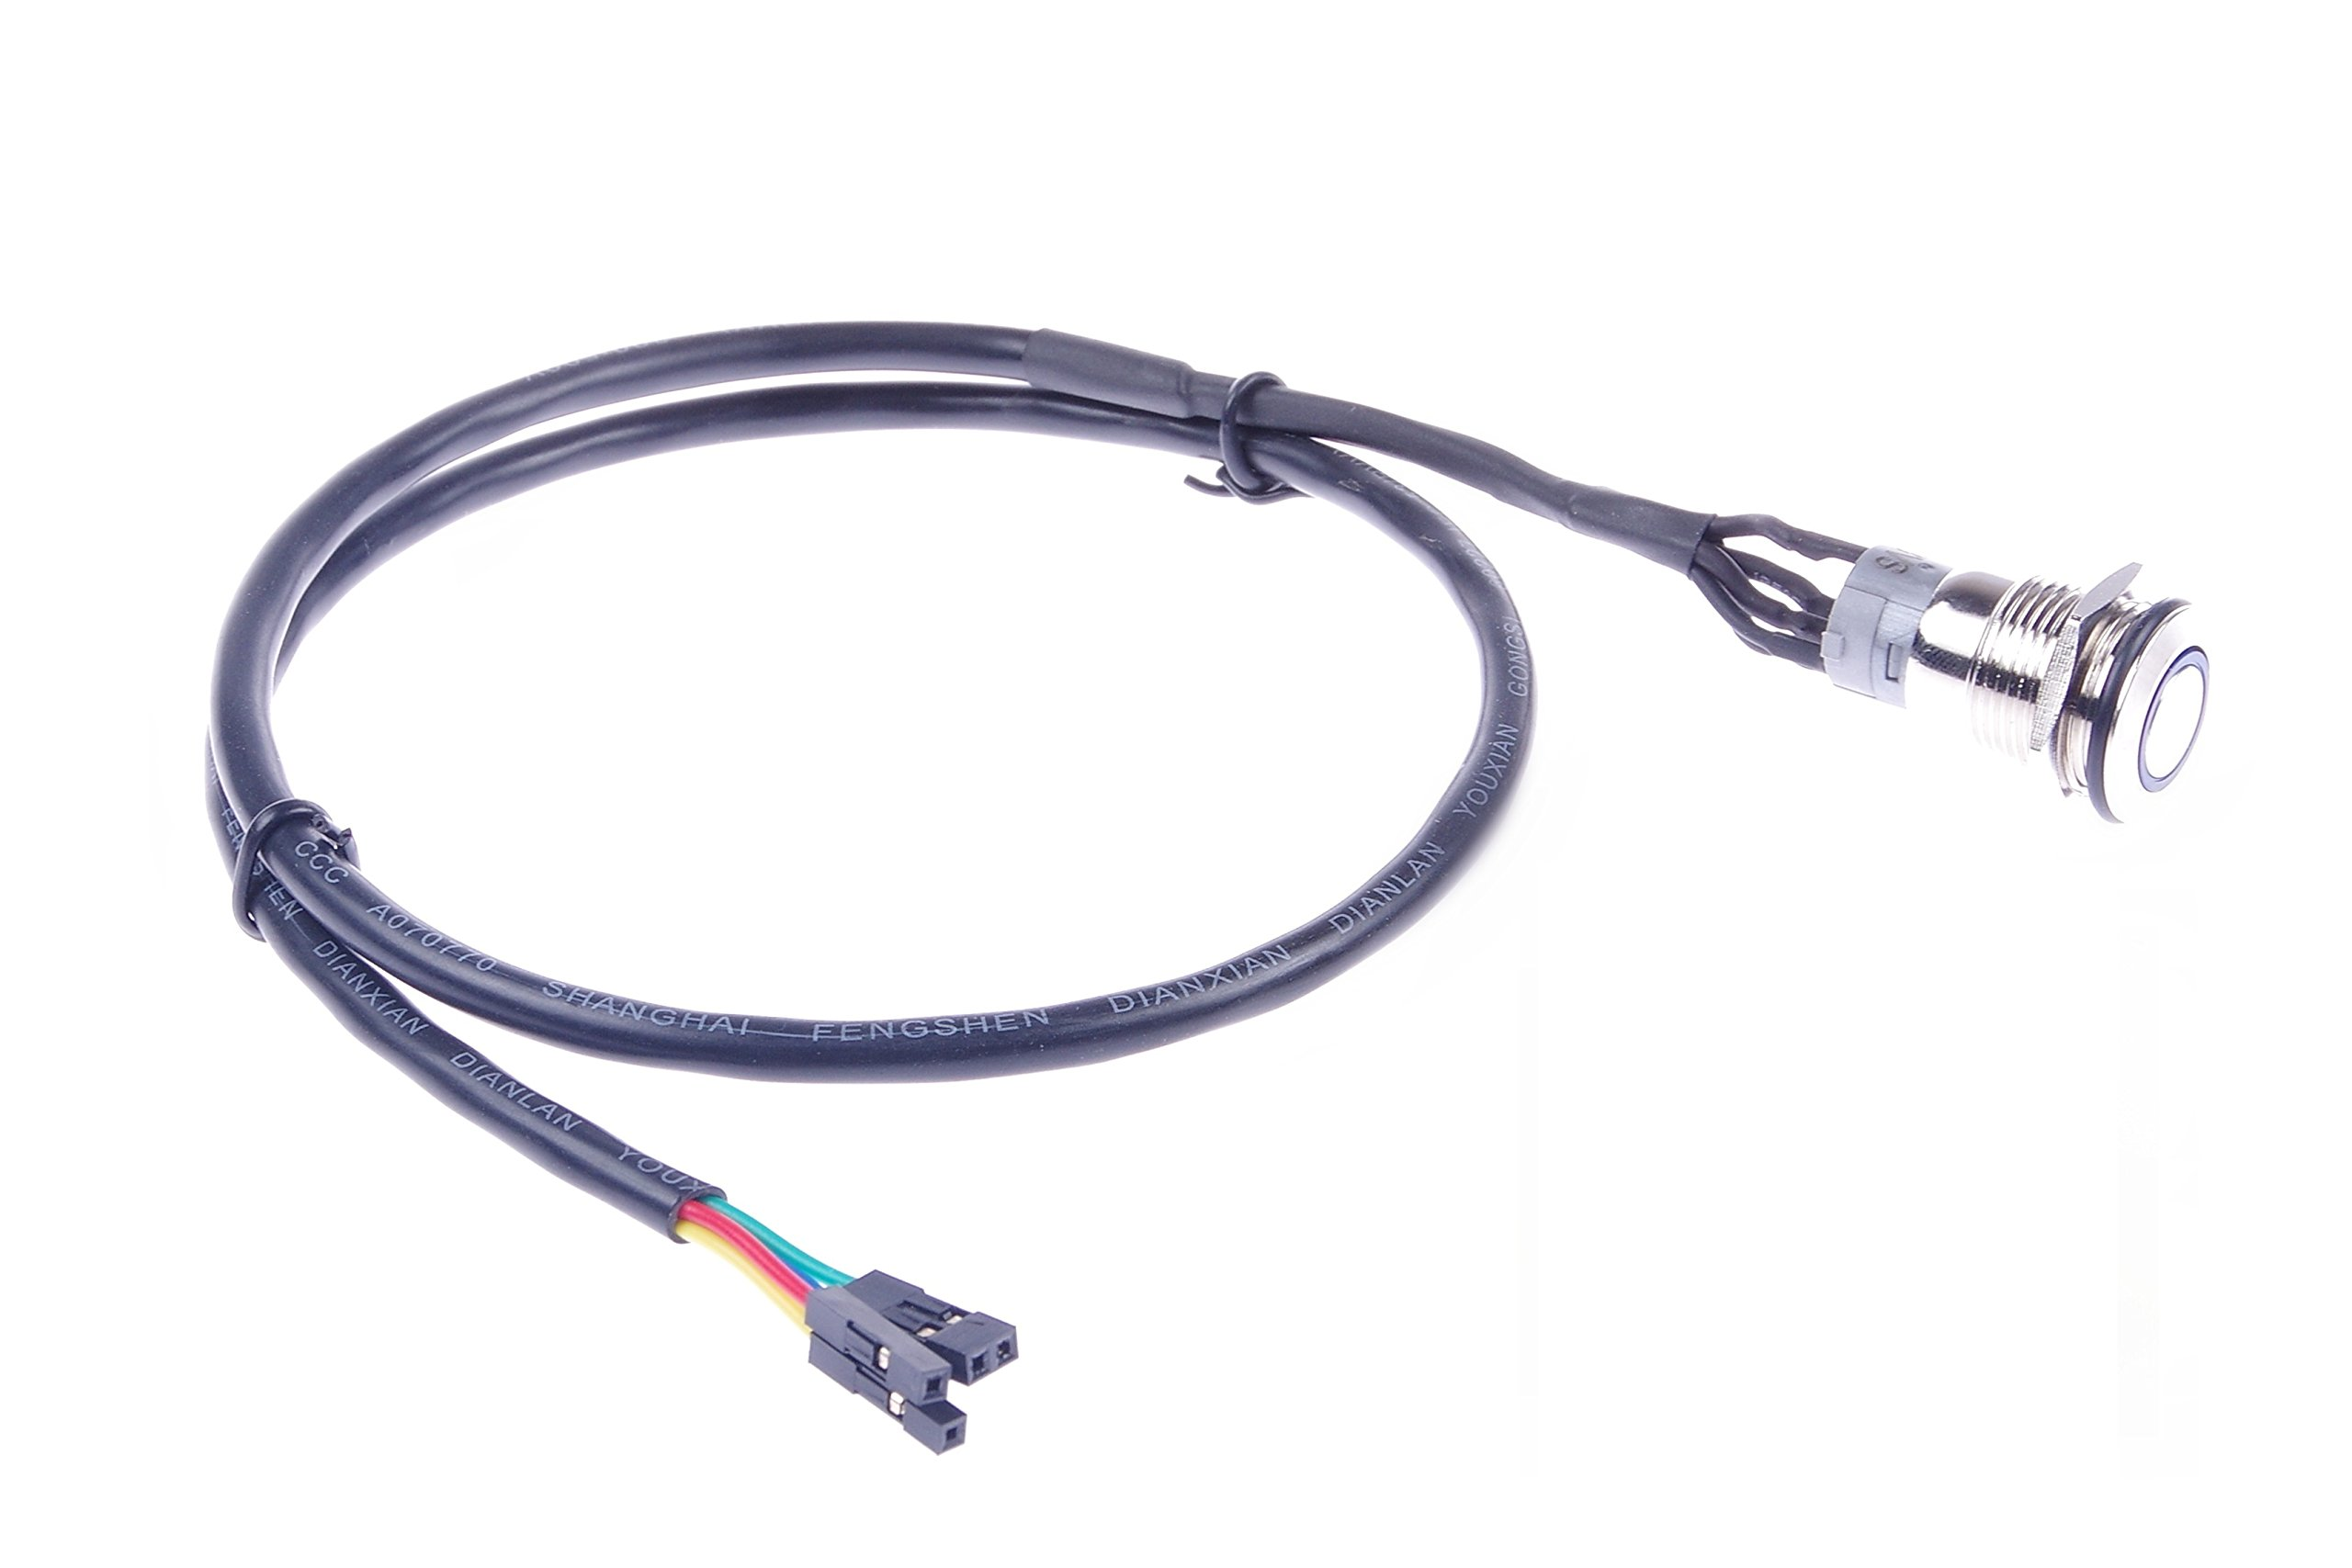 KNACRO 16mm Chassis Switch With 60cm/23.6in Cable Blue LED Ring For DIY computer switch and restart button (Blue Ring)